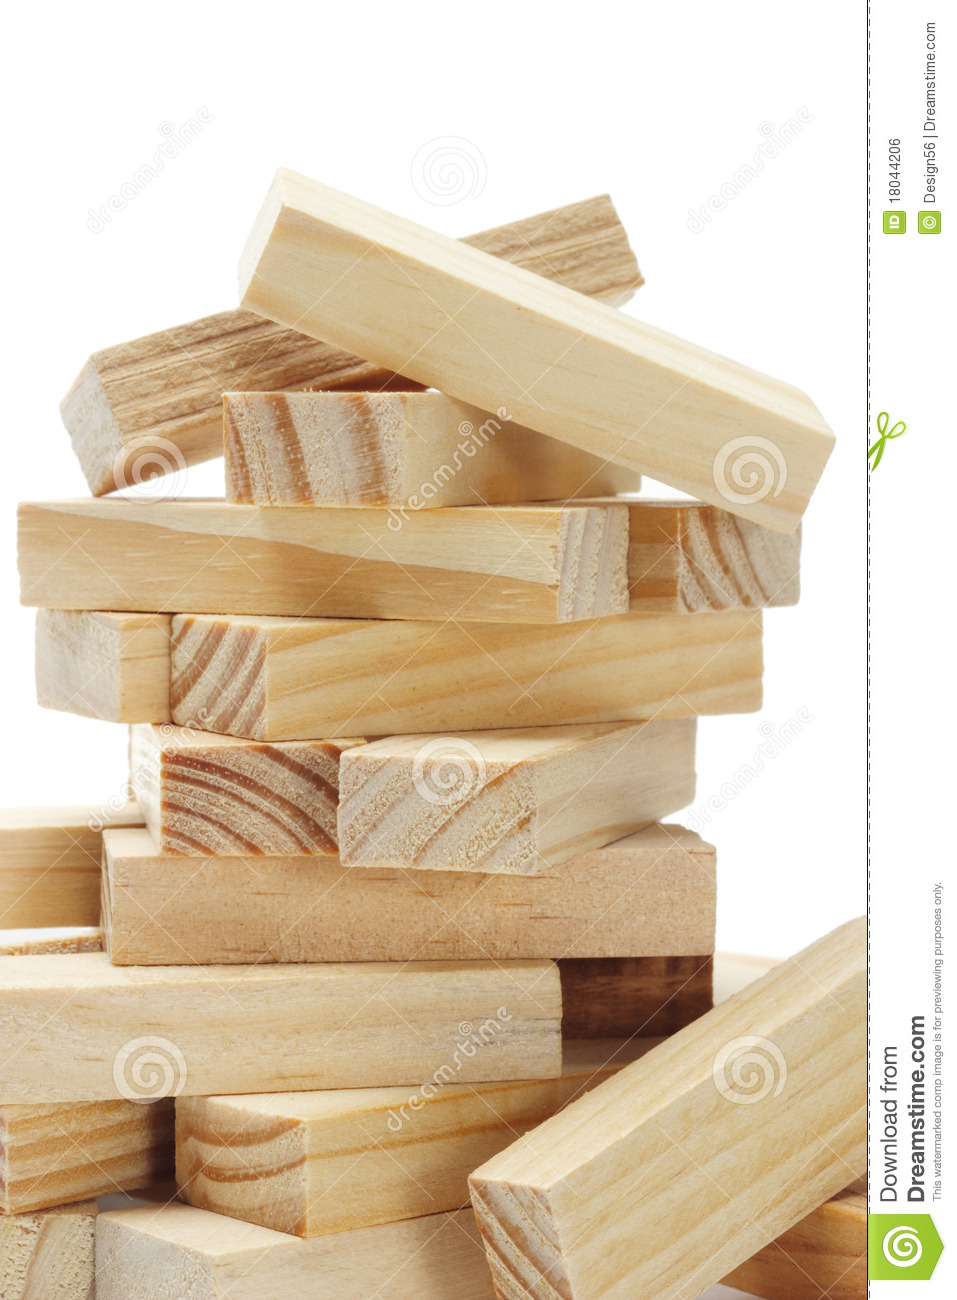 Wooden rectangular blocks royalty free stock image image for Paredes decoradas con madera